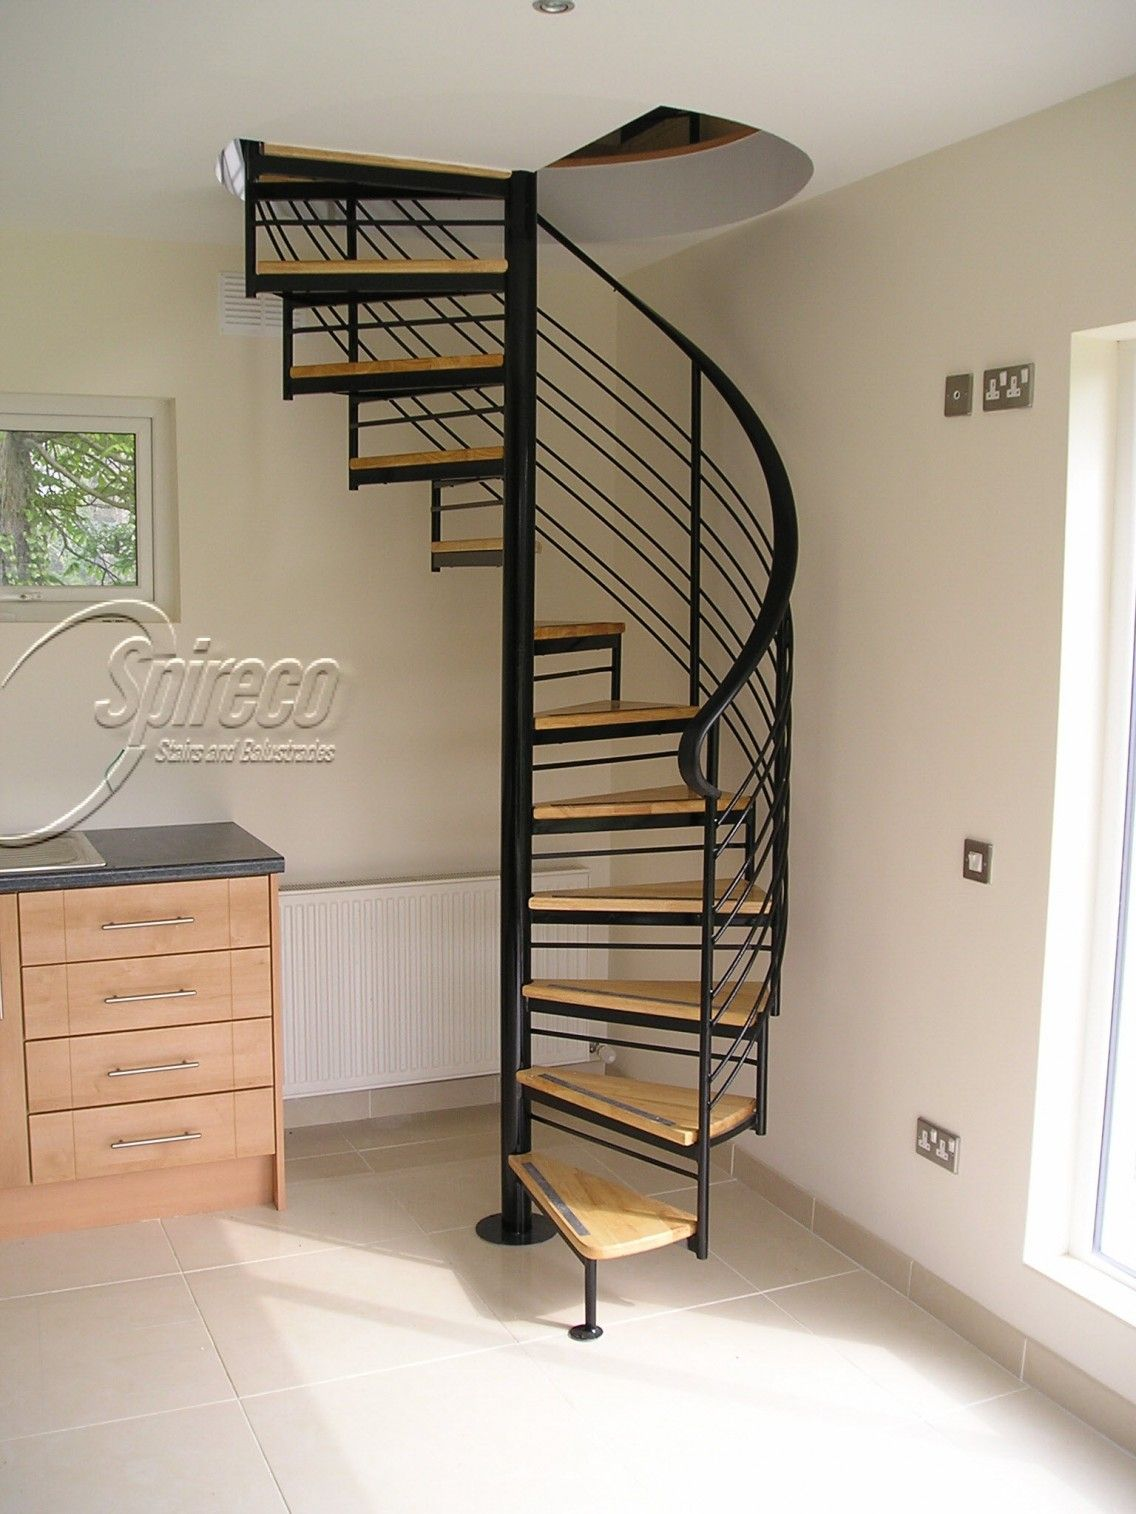 Basement Stairs Design: 13 Amusing Stair Ladder Design Digital Image Ideas